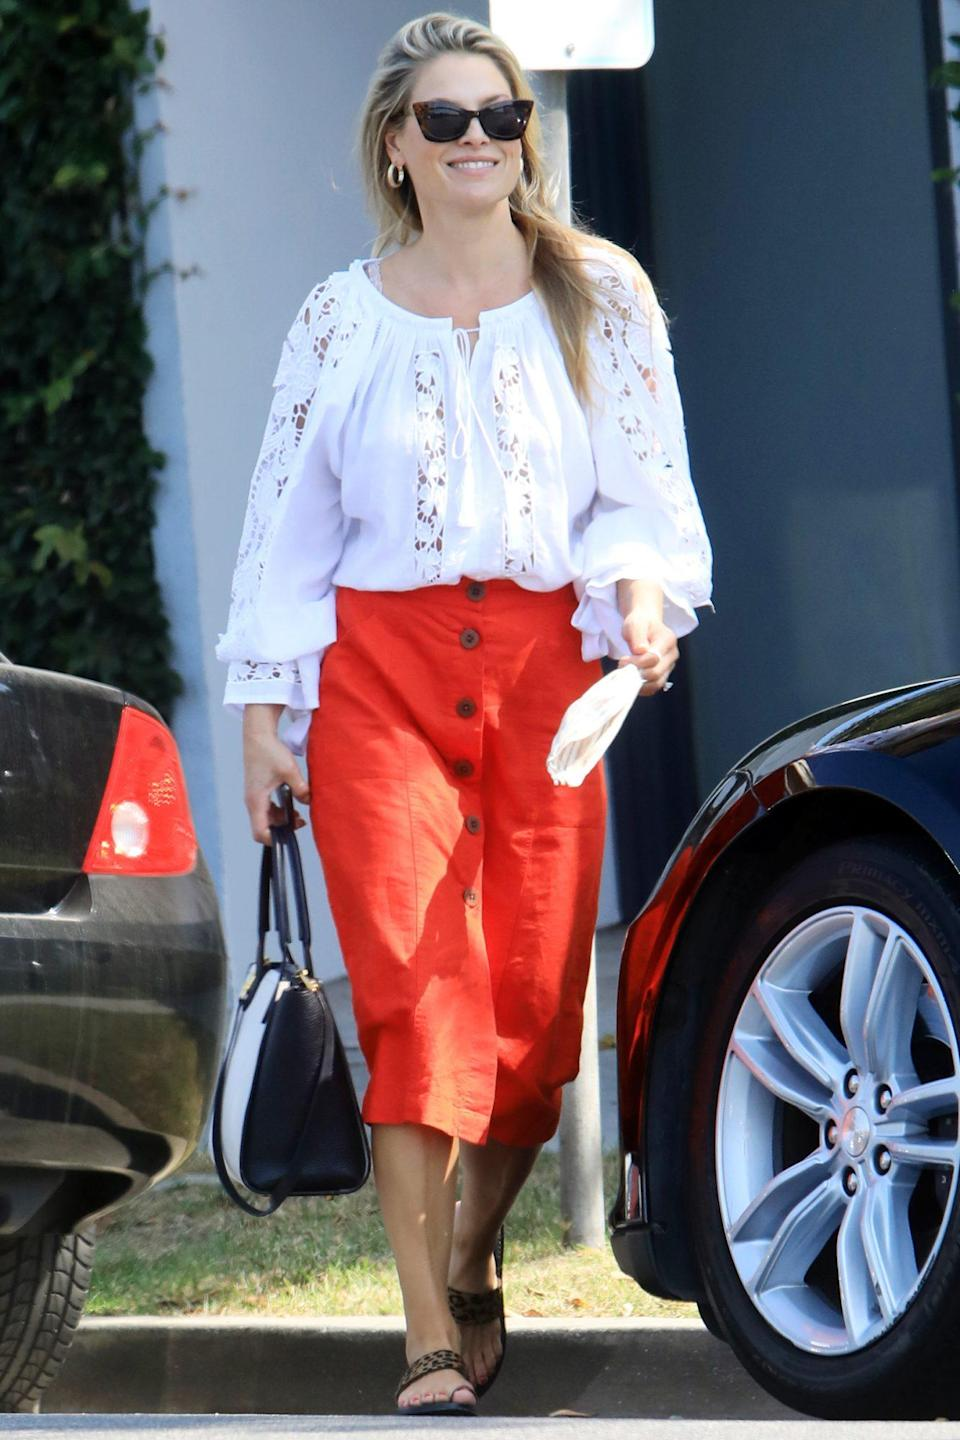 <p>Ali Larter looks ready for fall weather in a white Florii peasant blouse and red midi-skirt while running errands on Wednesday in L.A. </p>